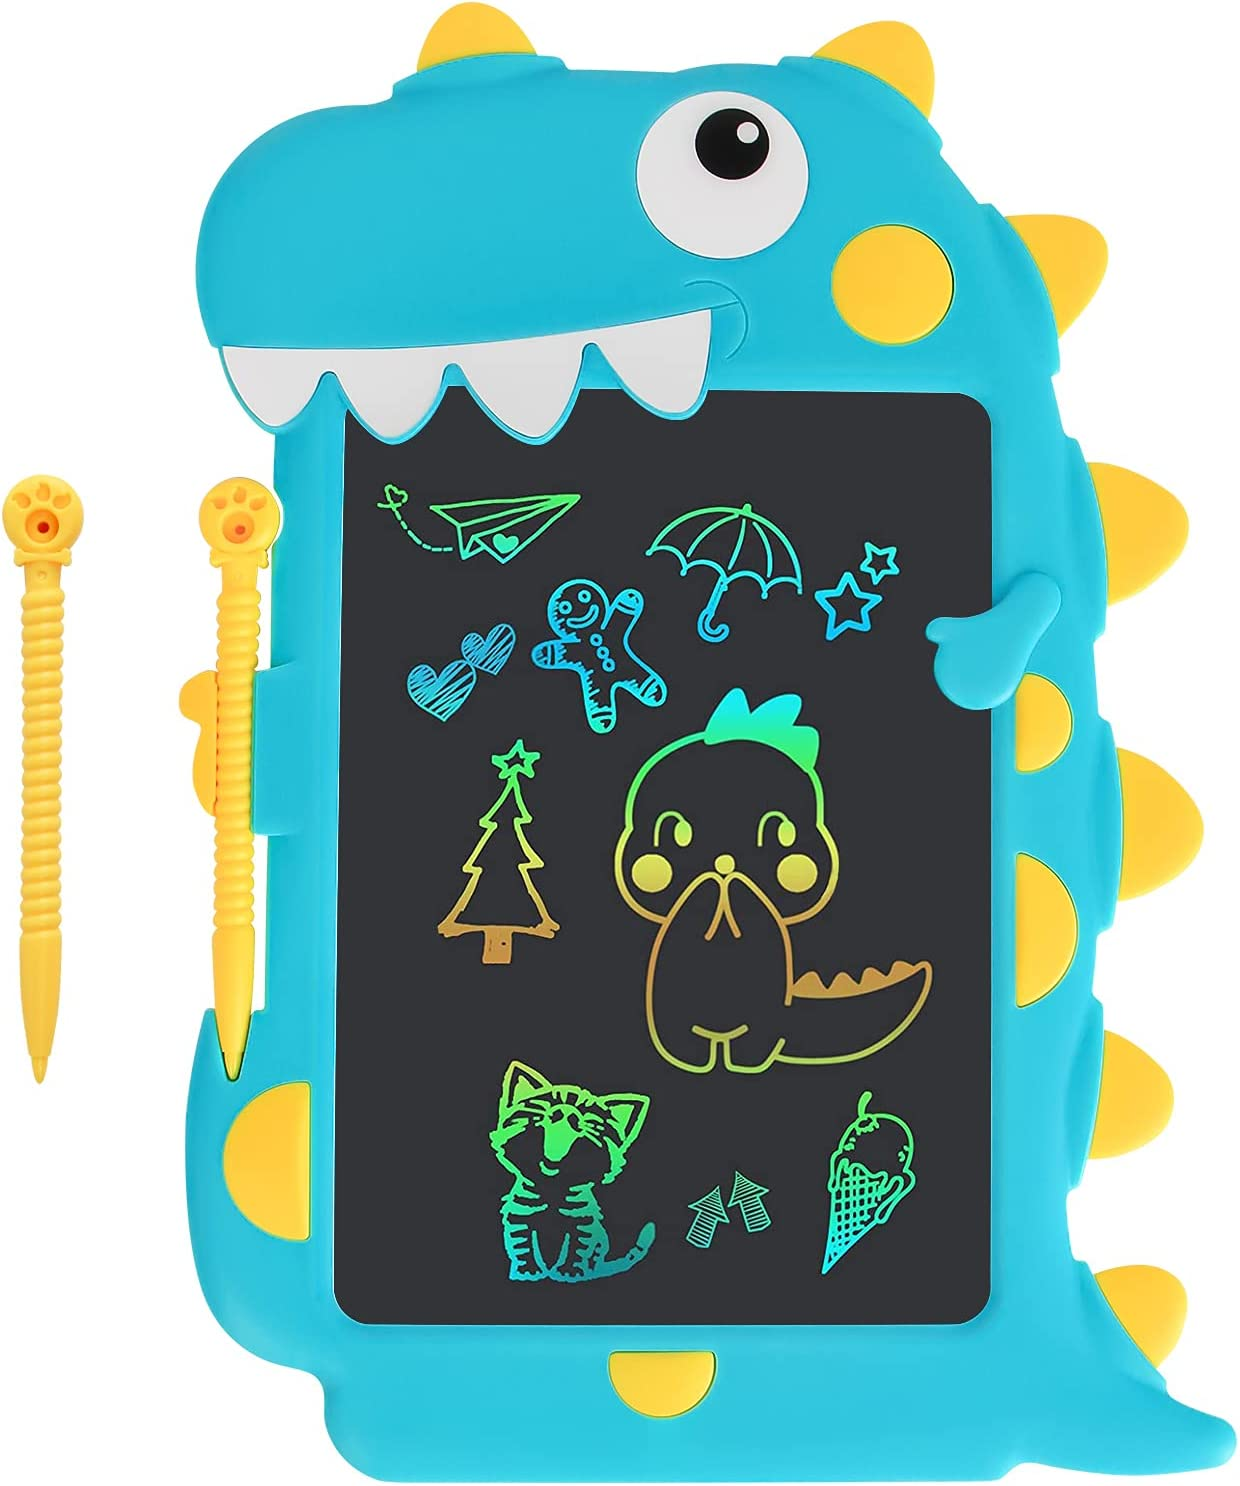 CuFun LCD Writing Tablet 9 inch Toddler Doodle Board Drawing Tablet Colorful Screen Pad Learning Educational Toy for Kids Scribbler Pad for 3 4 5 6 7 Years Old Boys and Girls (Blue Crocodile)